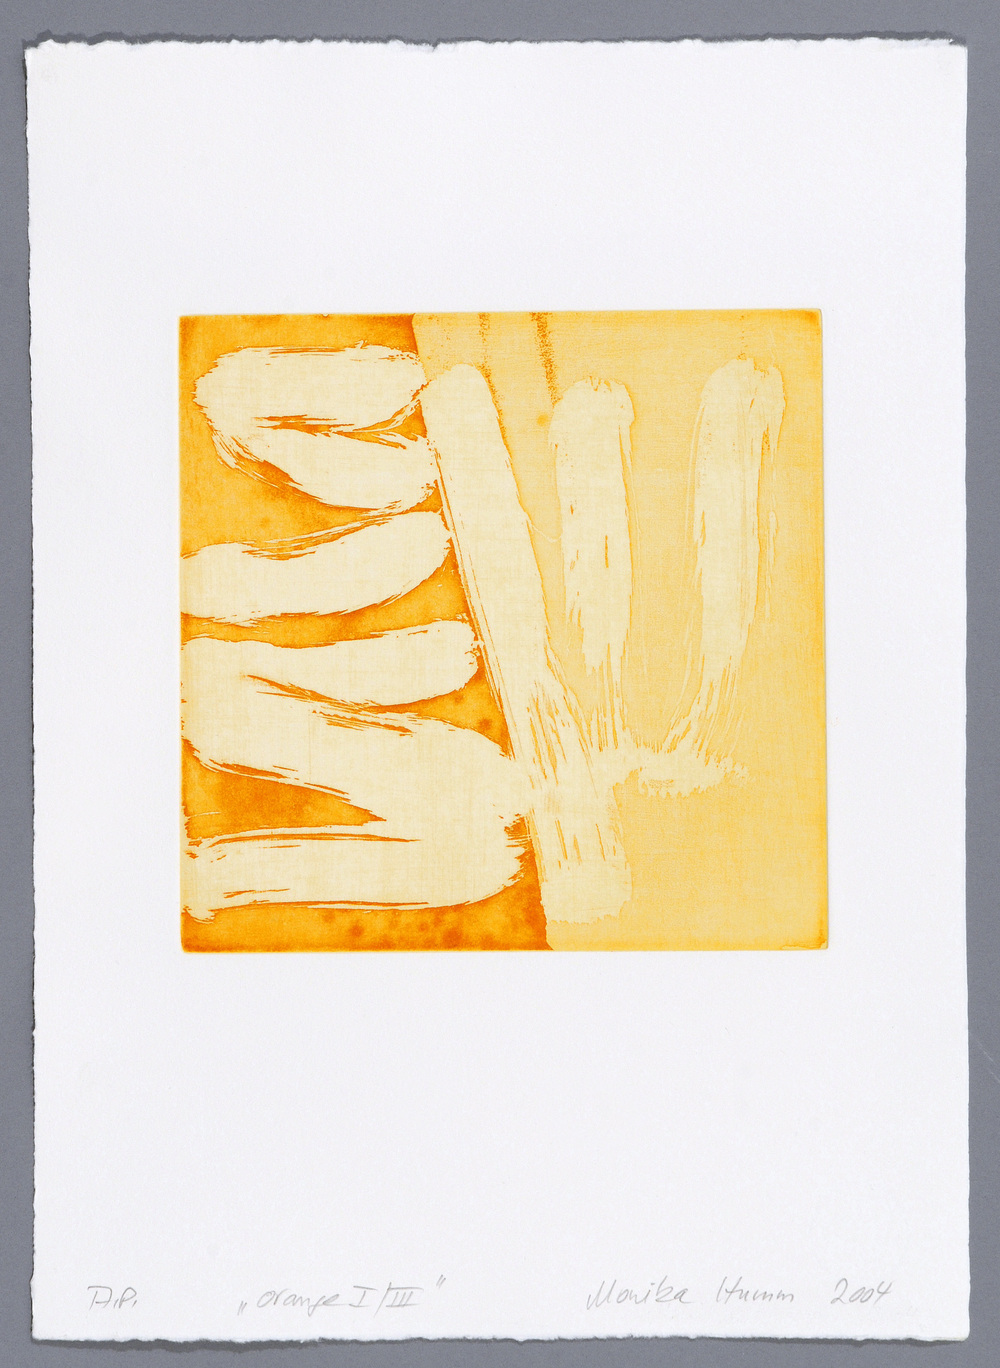 Humm_Aquatinta_V_yellow_ochre_I_39,5x28,5cm.jpg